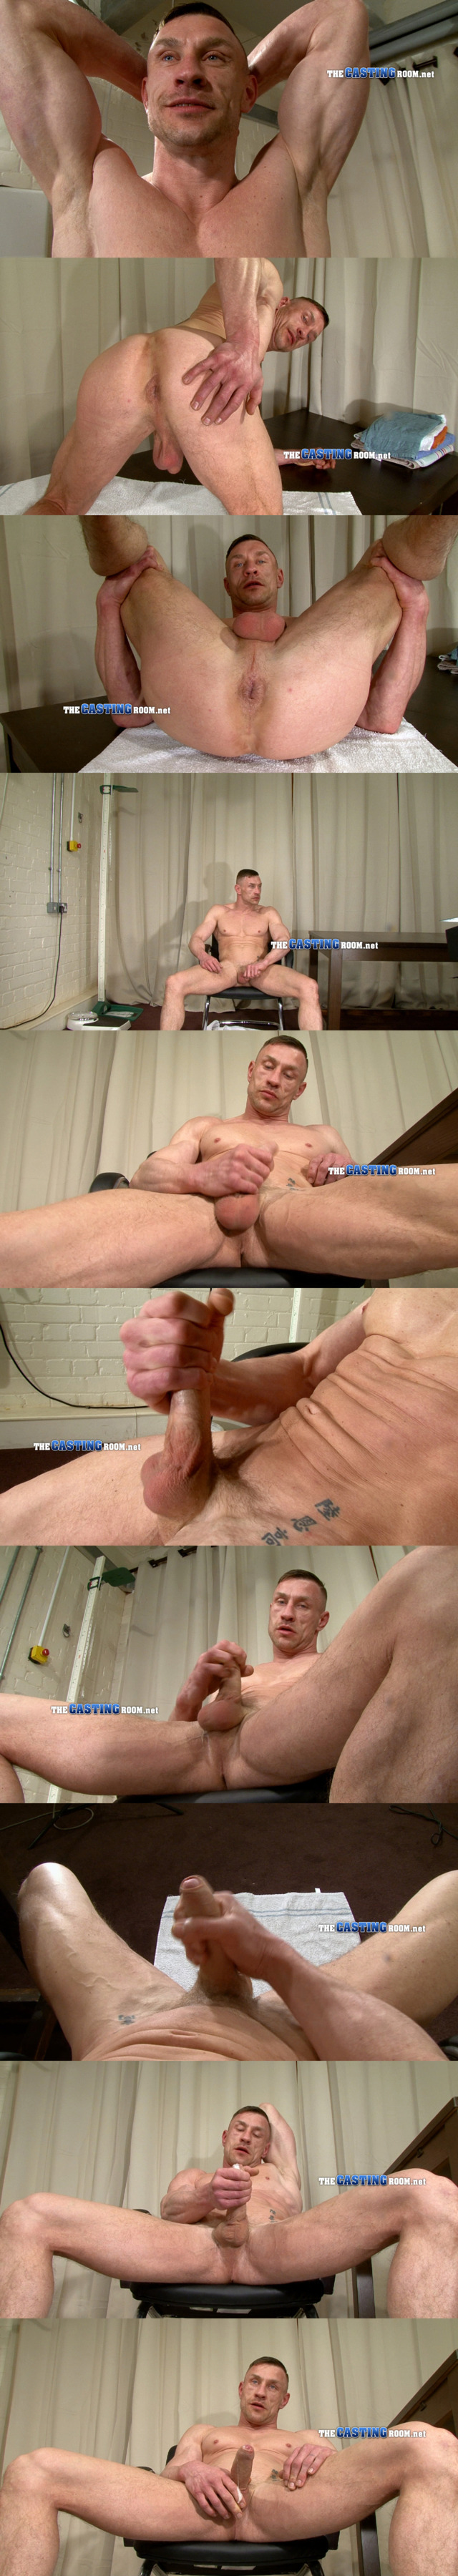 straight muscled man wanking naked audition